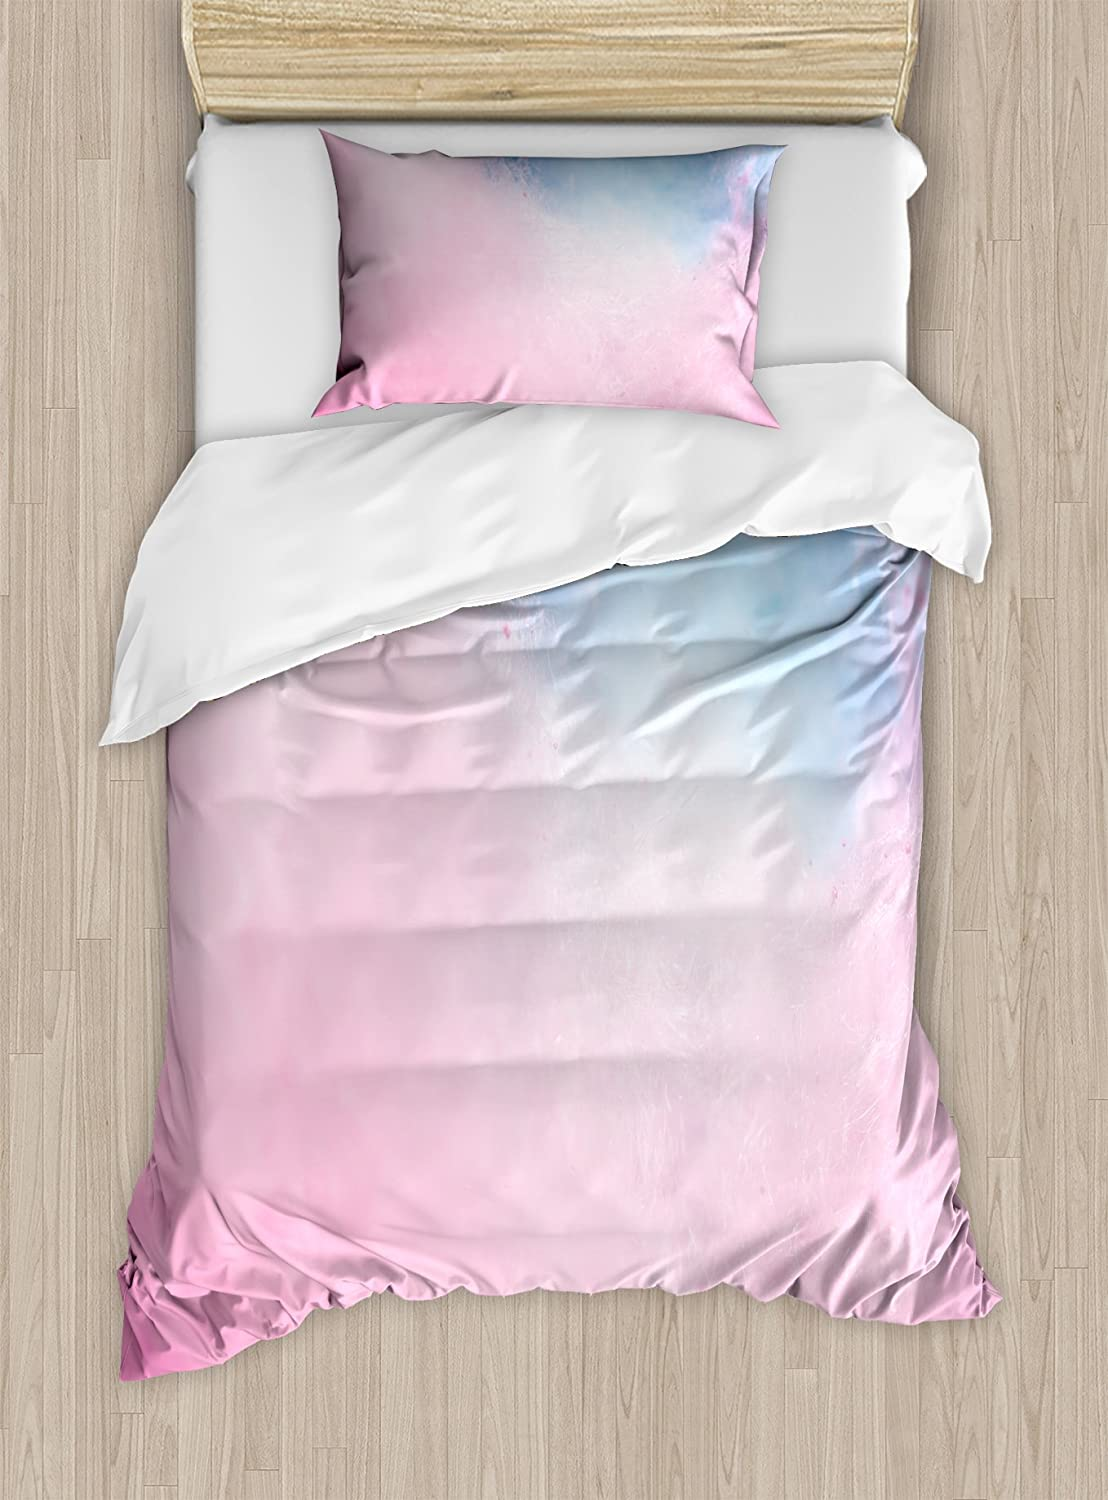 Lunarable Blush Duvet Cover Set, Cotton Candy Effect with Pastel Blue and Pink Colors Fluffy Carnival Sweets, Decorative 2 Piece Bedding Set with 1 Pillow Sham, Twin Size, Azure Blue